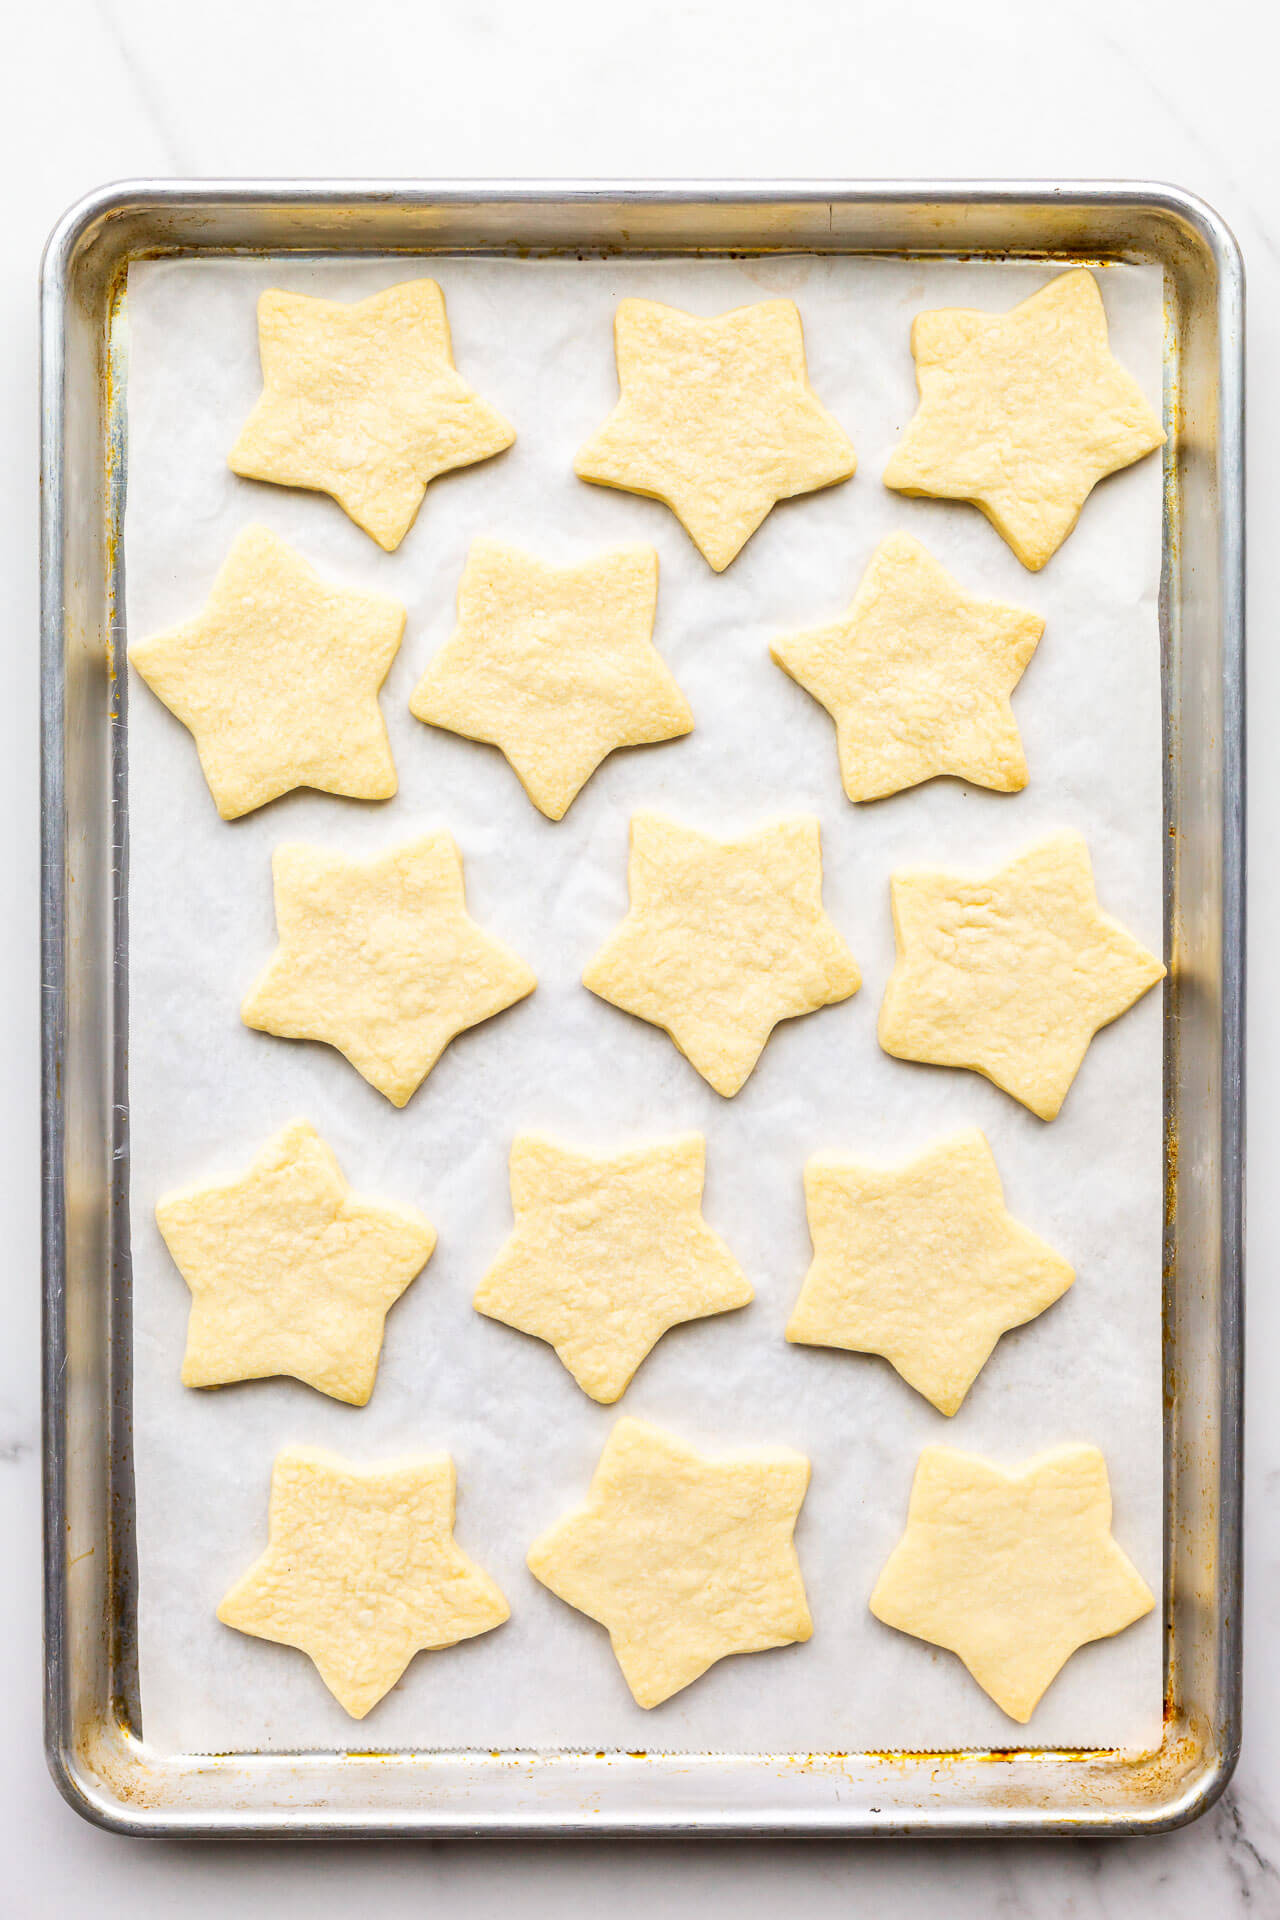 Freshly baked star-shaped shortbread cookies.